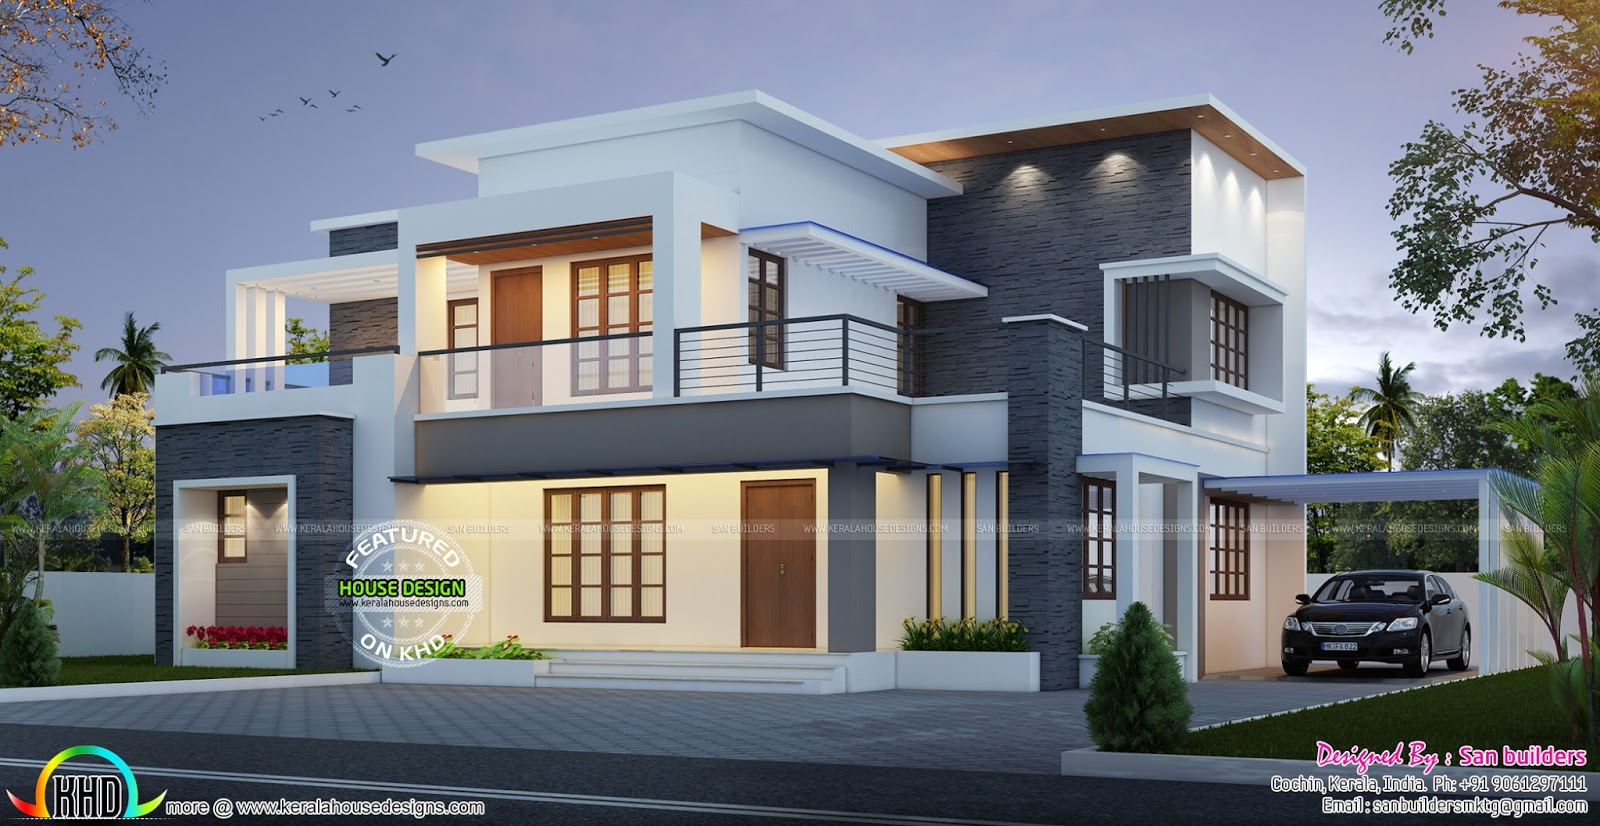 Help Design My Home House Plan And Elevation By San Builders Kerala Home